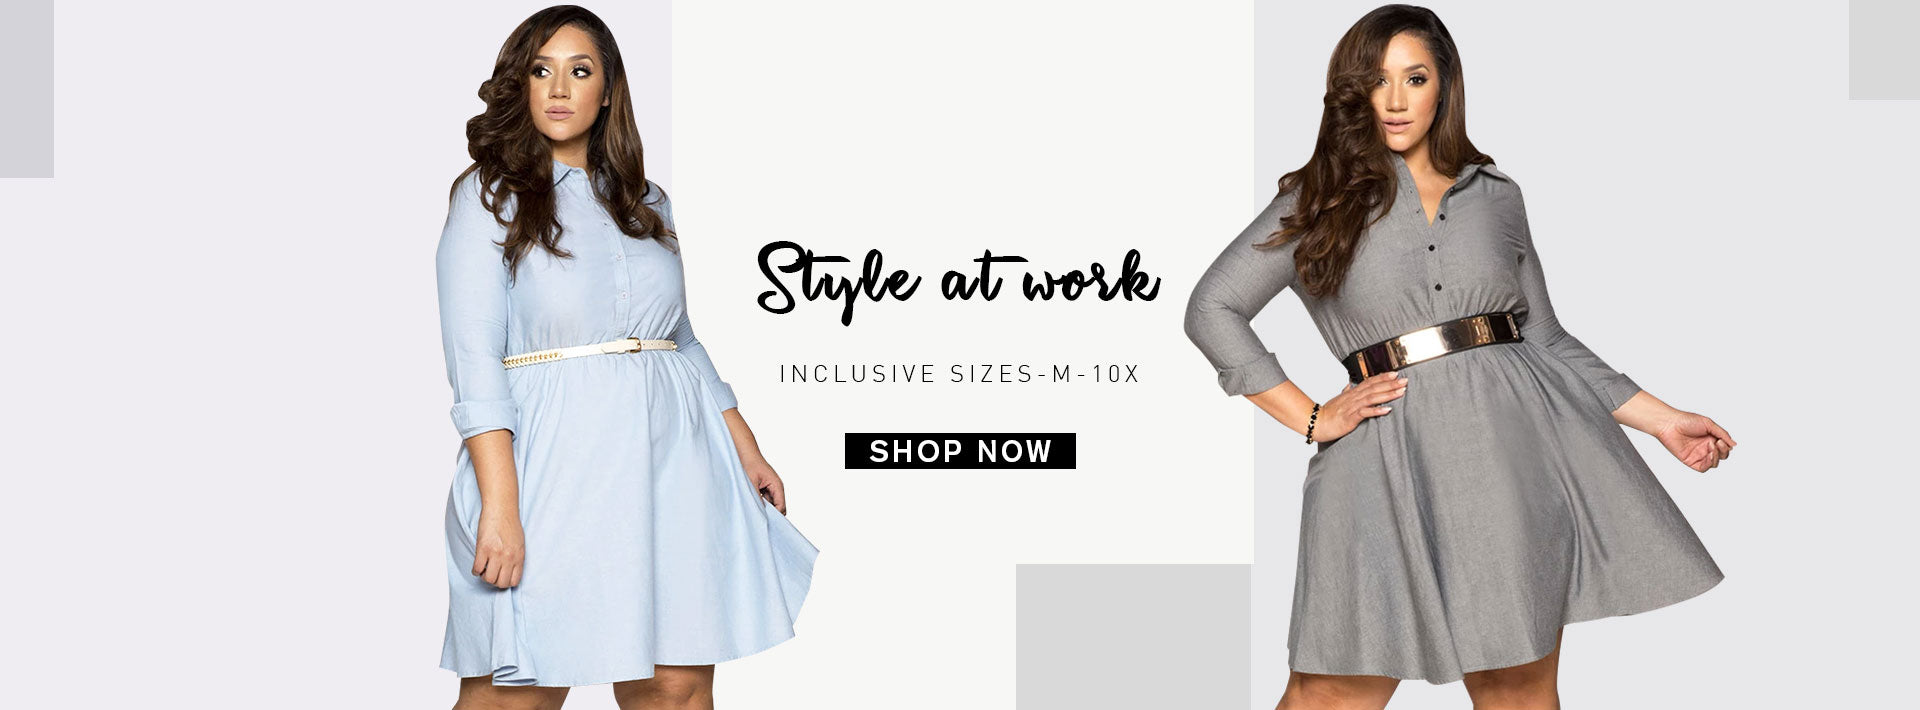 Plus Size Womens Clothing| Custom Plus Size Clothing- CurveGirl